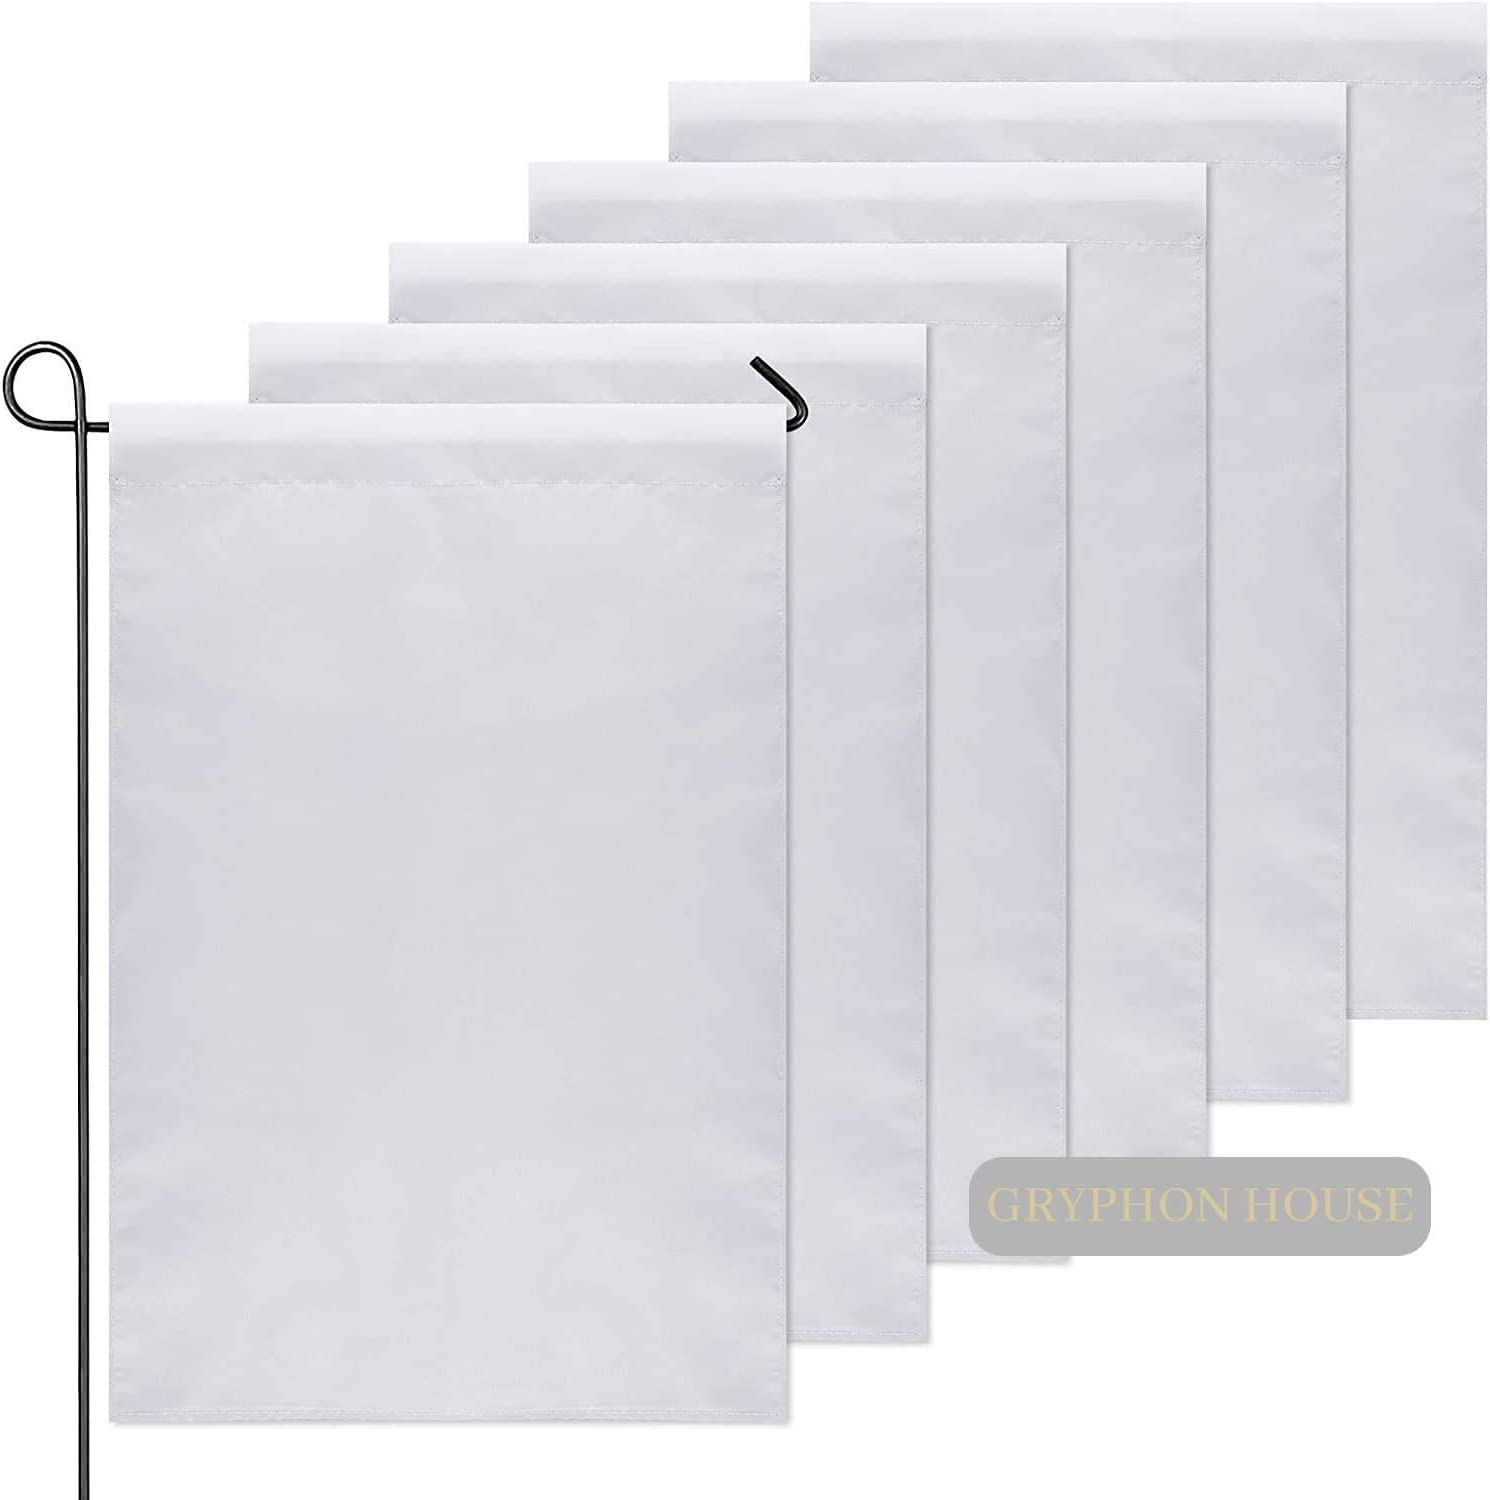 OrangeTag 10Pcs 30x45CM Sublimation Blank Polyester Lawn Garden Flags Parade Banners White